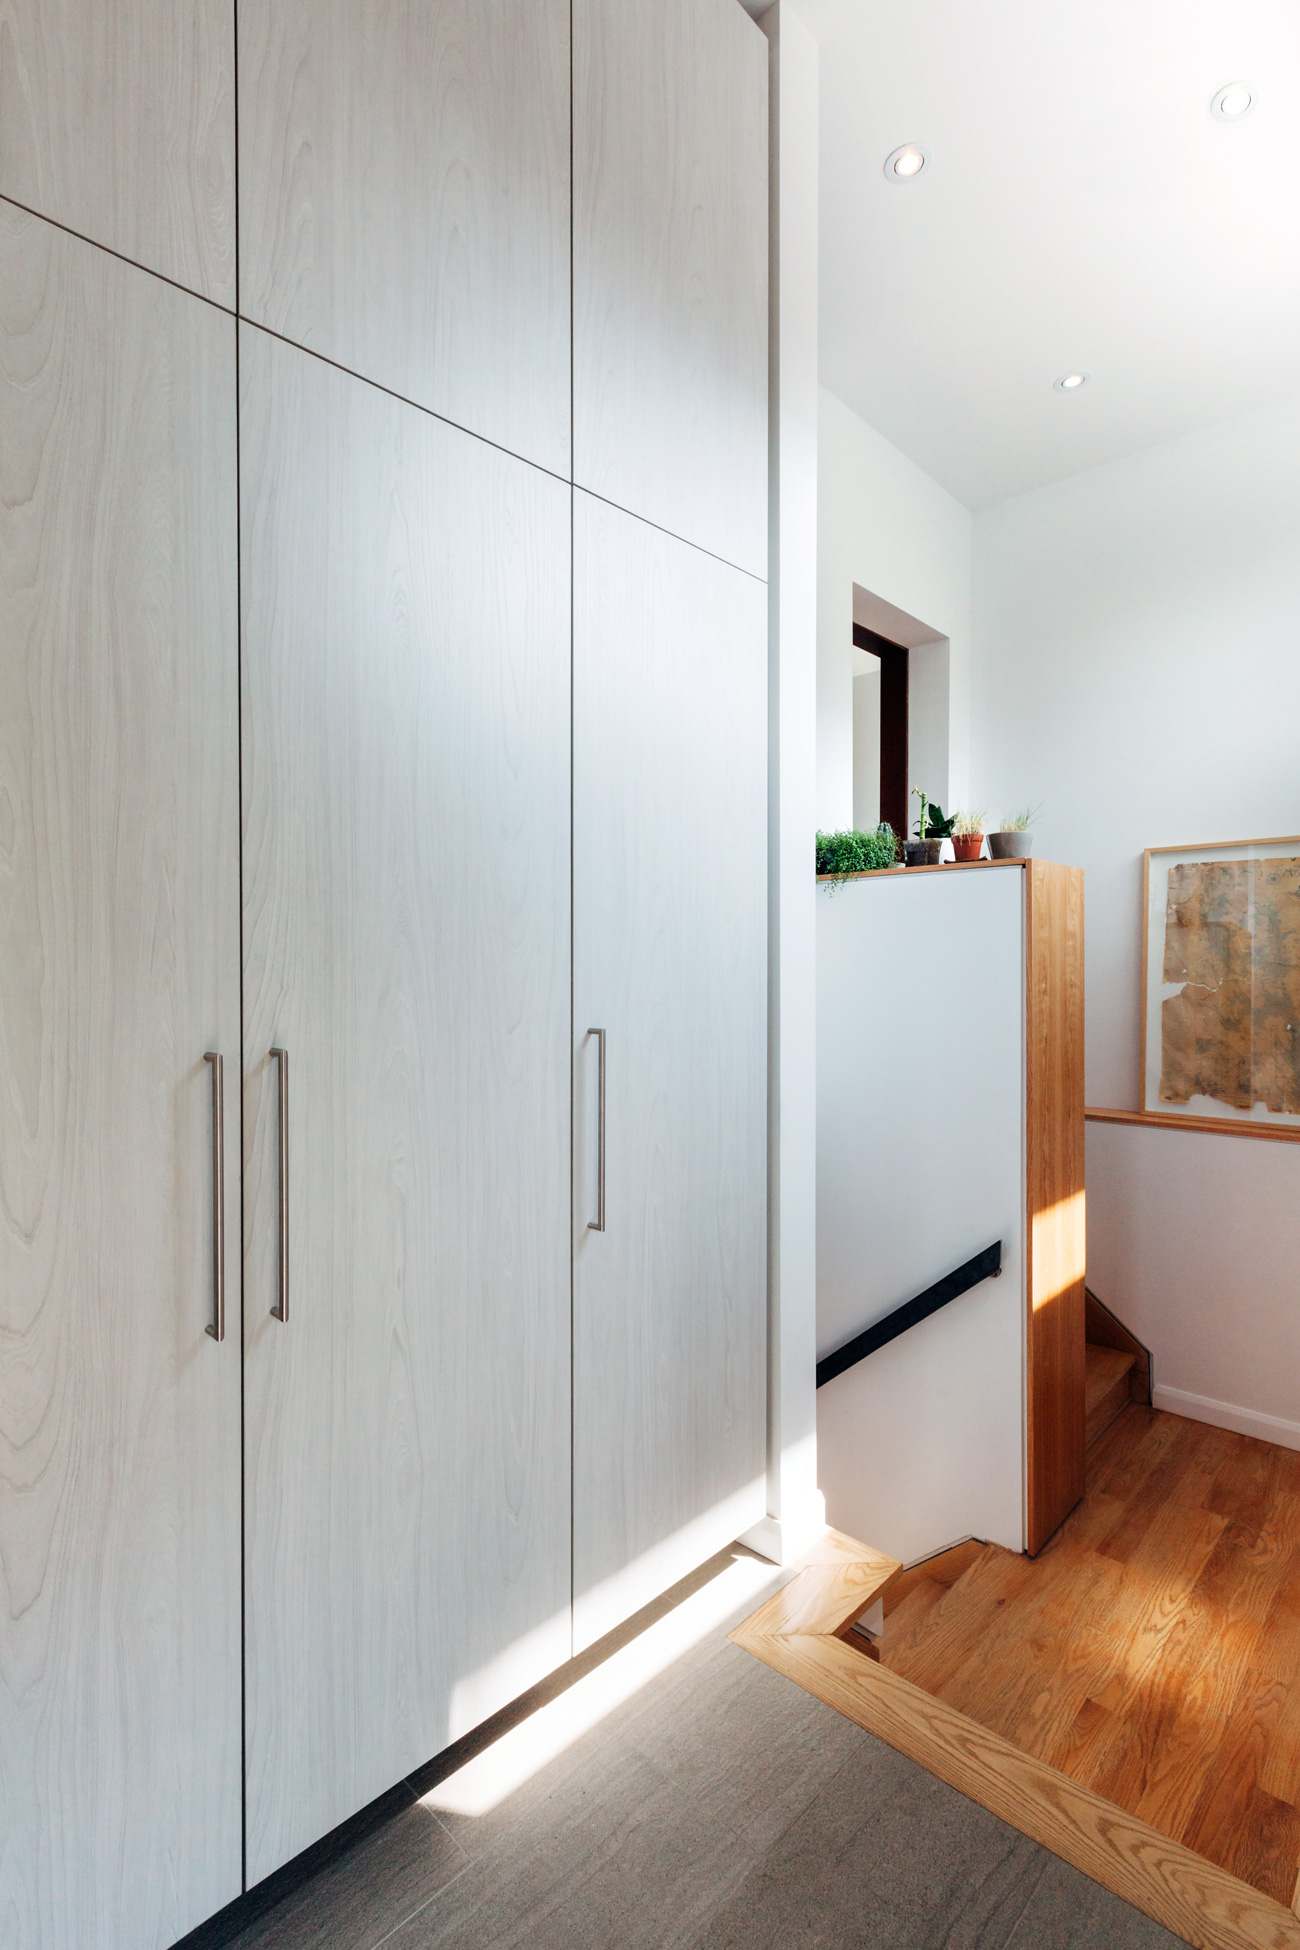 A former servery has made way for a mudroom with access to the basement and up to the kitchen. Closets for the family of five are fronted with textured laminate by Uniboard.